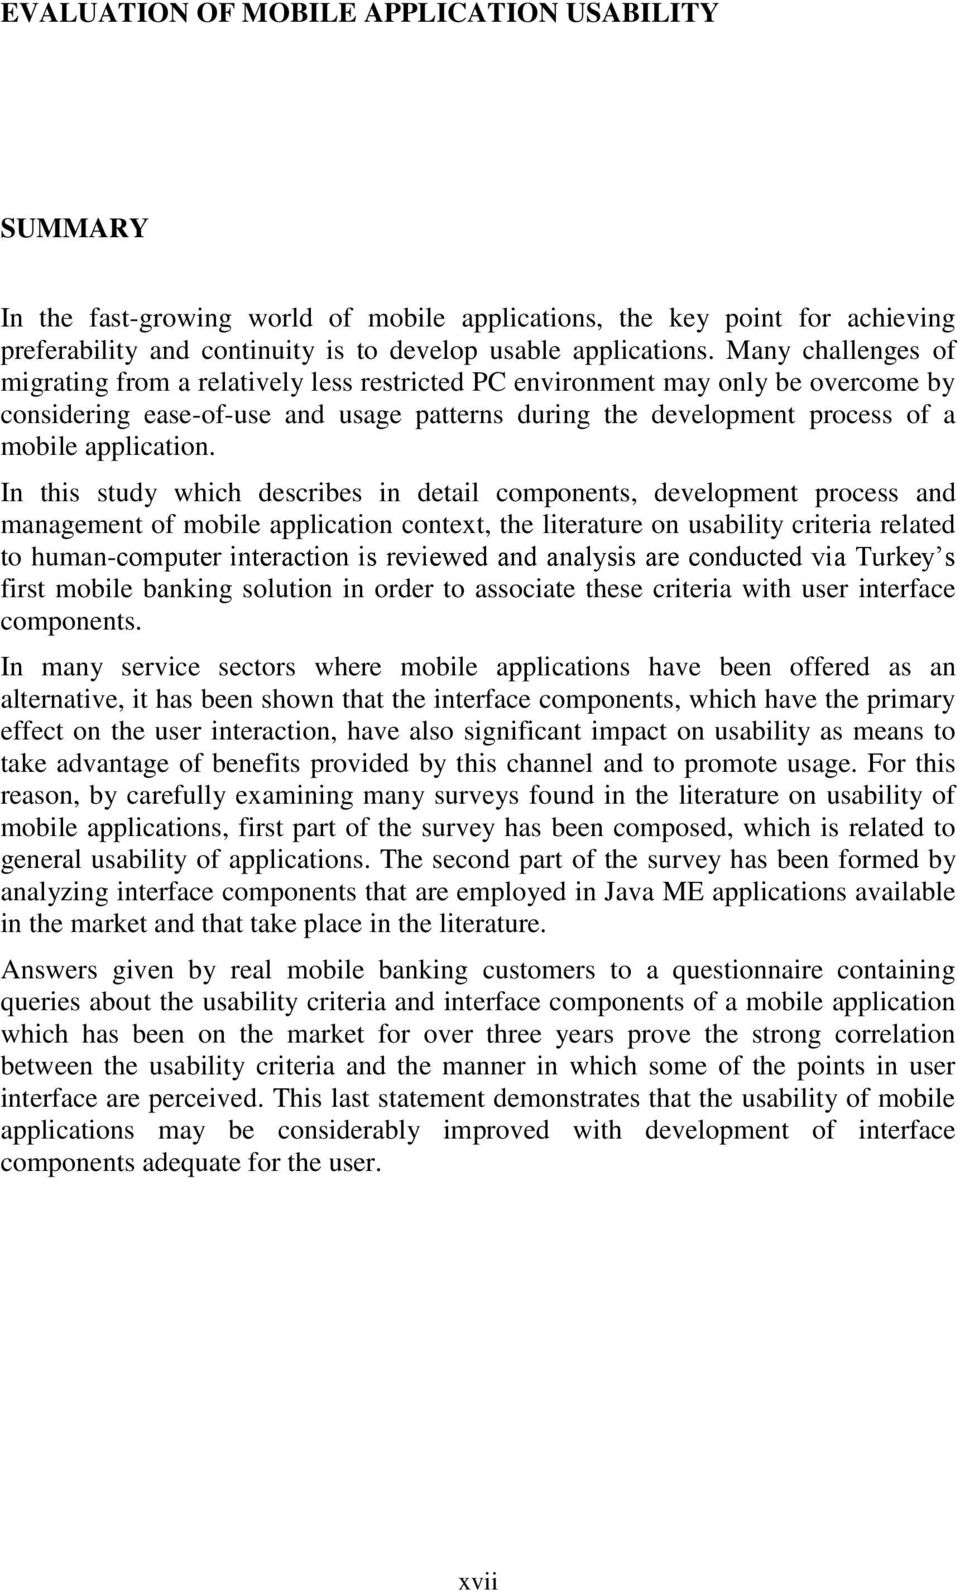 In this study which describes in detail components, development process and management of mobile application context, the literature on usability criteria related to human-computer interaction is